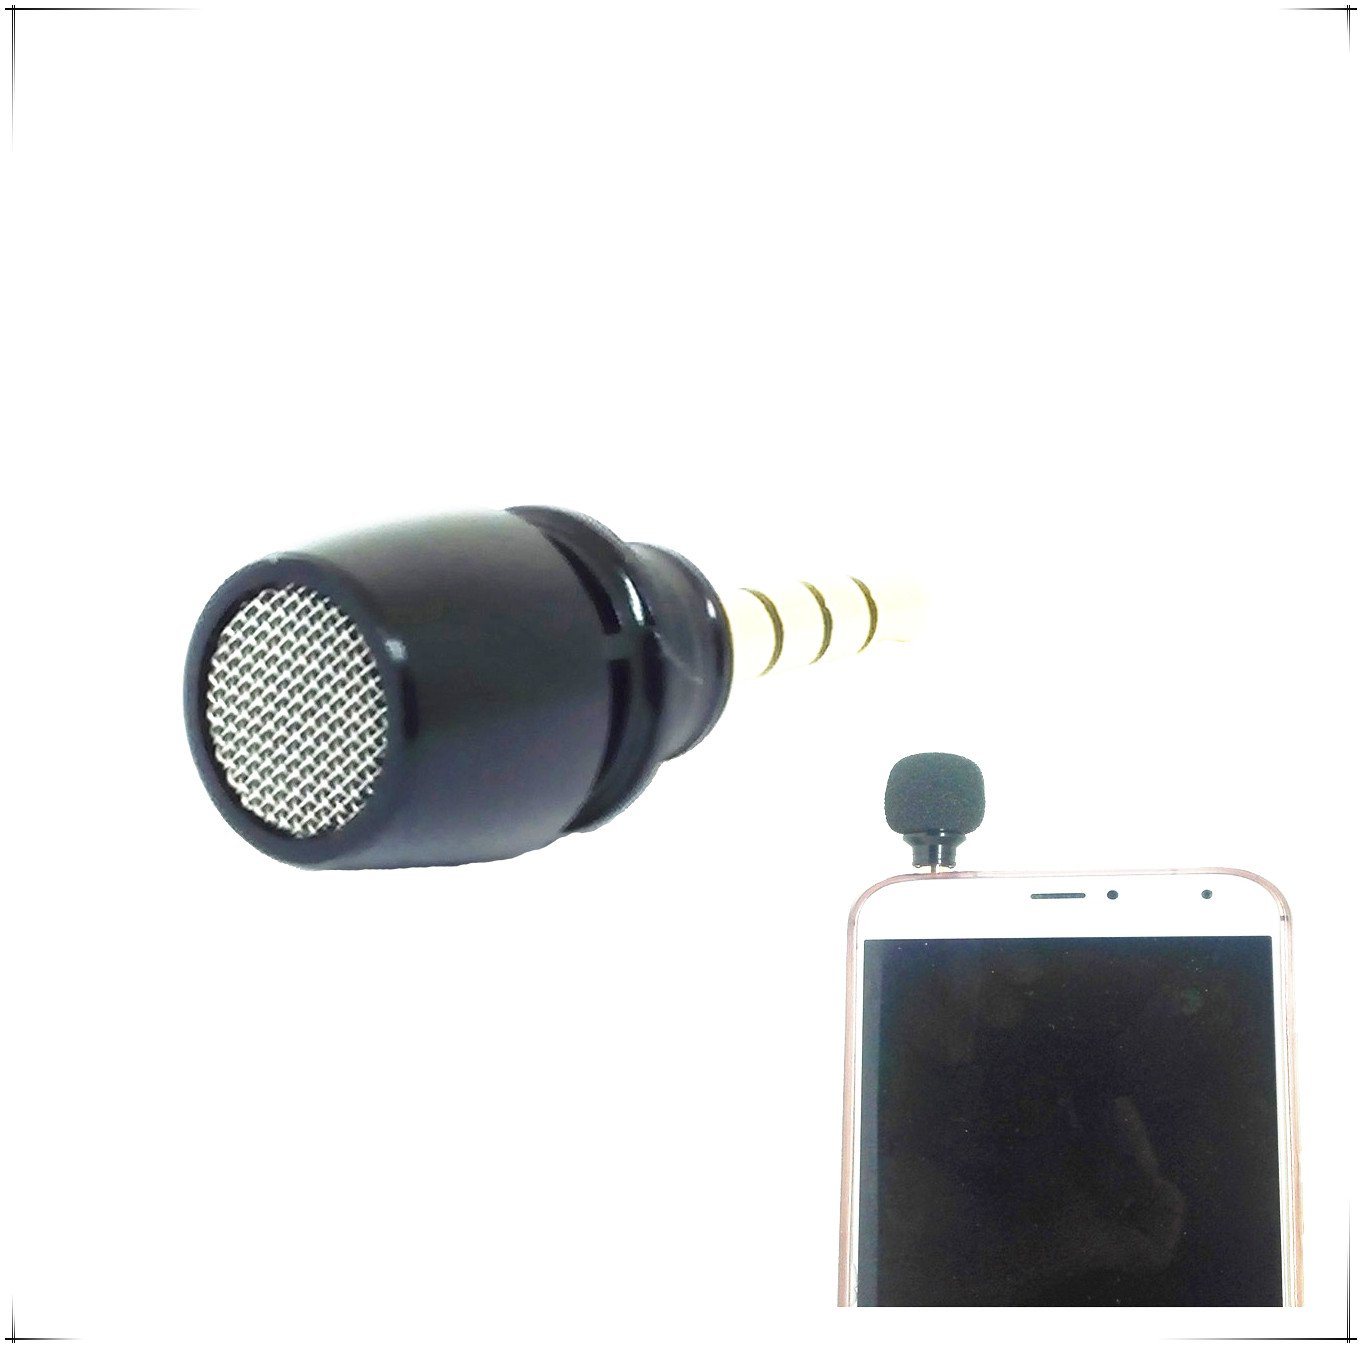 Professional Black Mini Condenser Microphone Mobile Phone Record Mikrofon for iPhone for Samsung